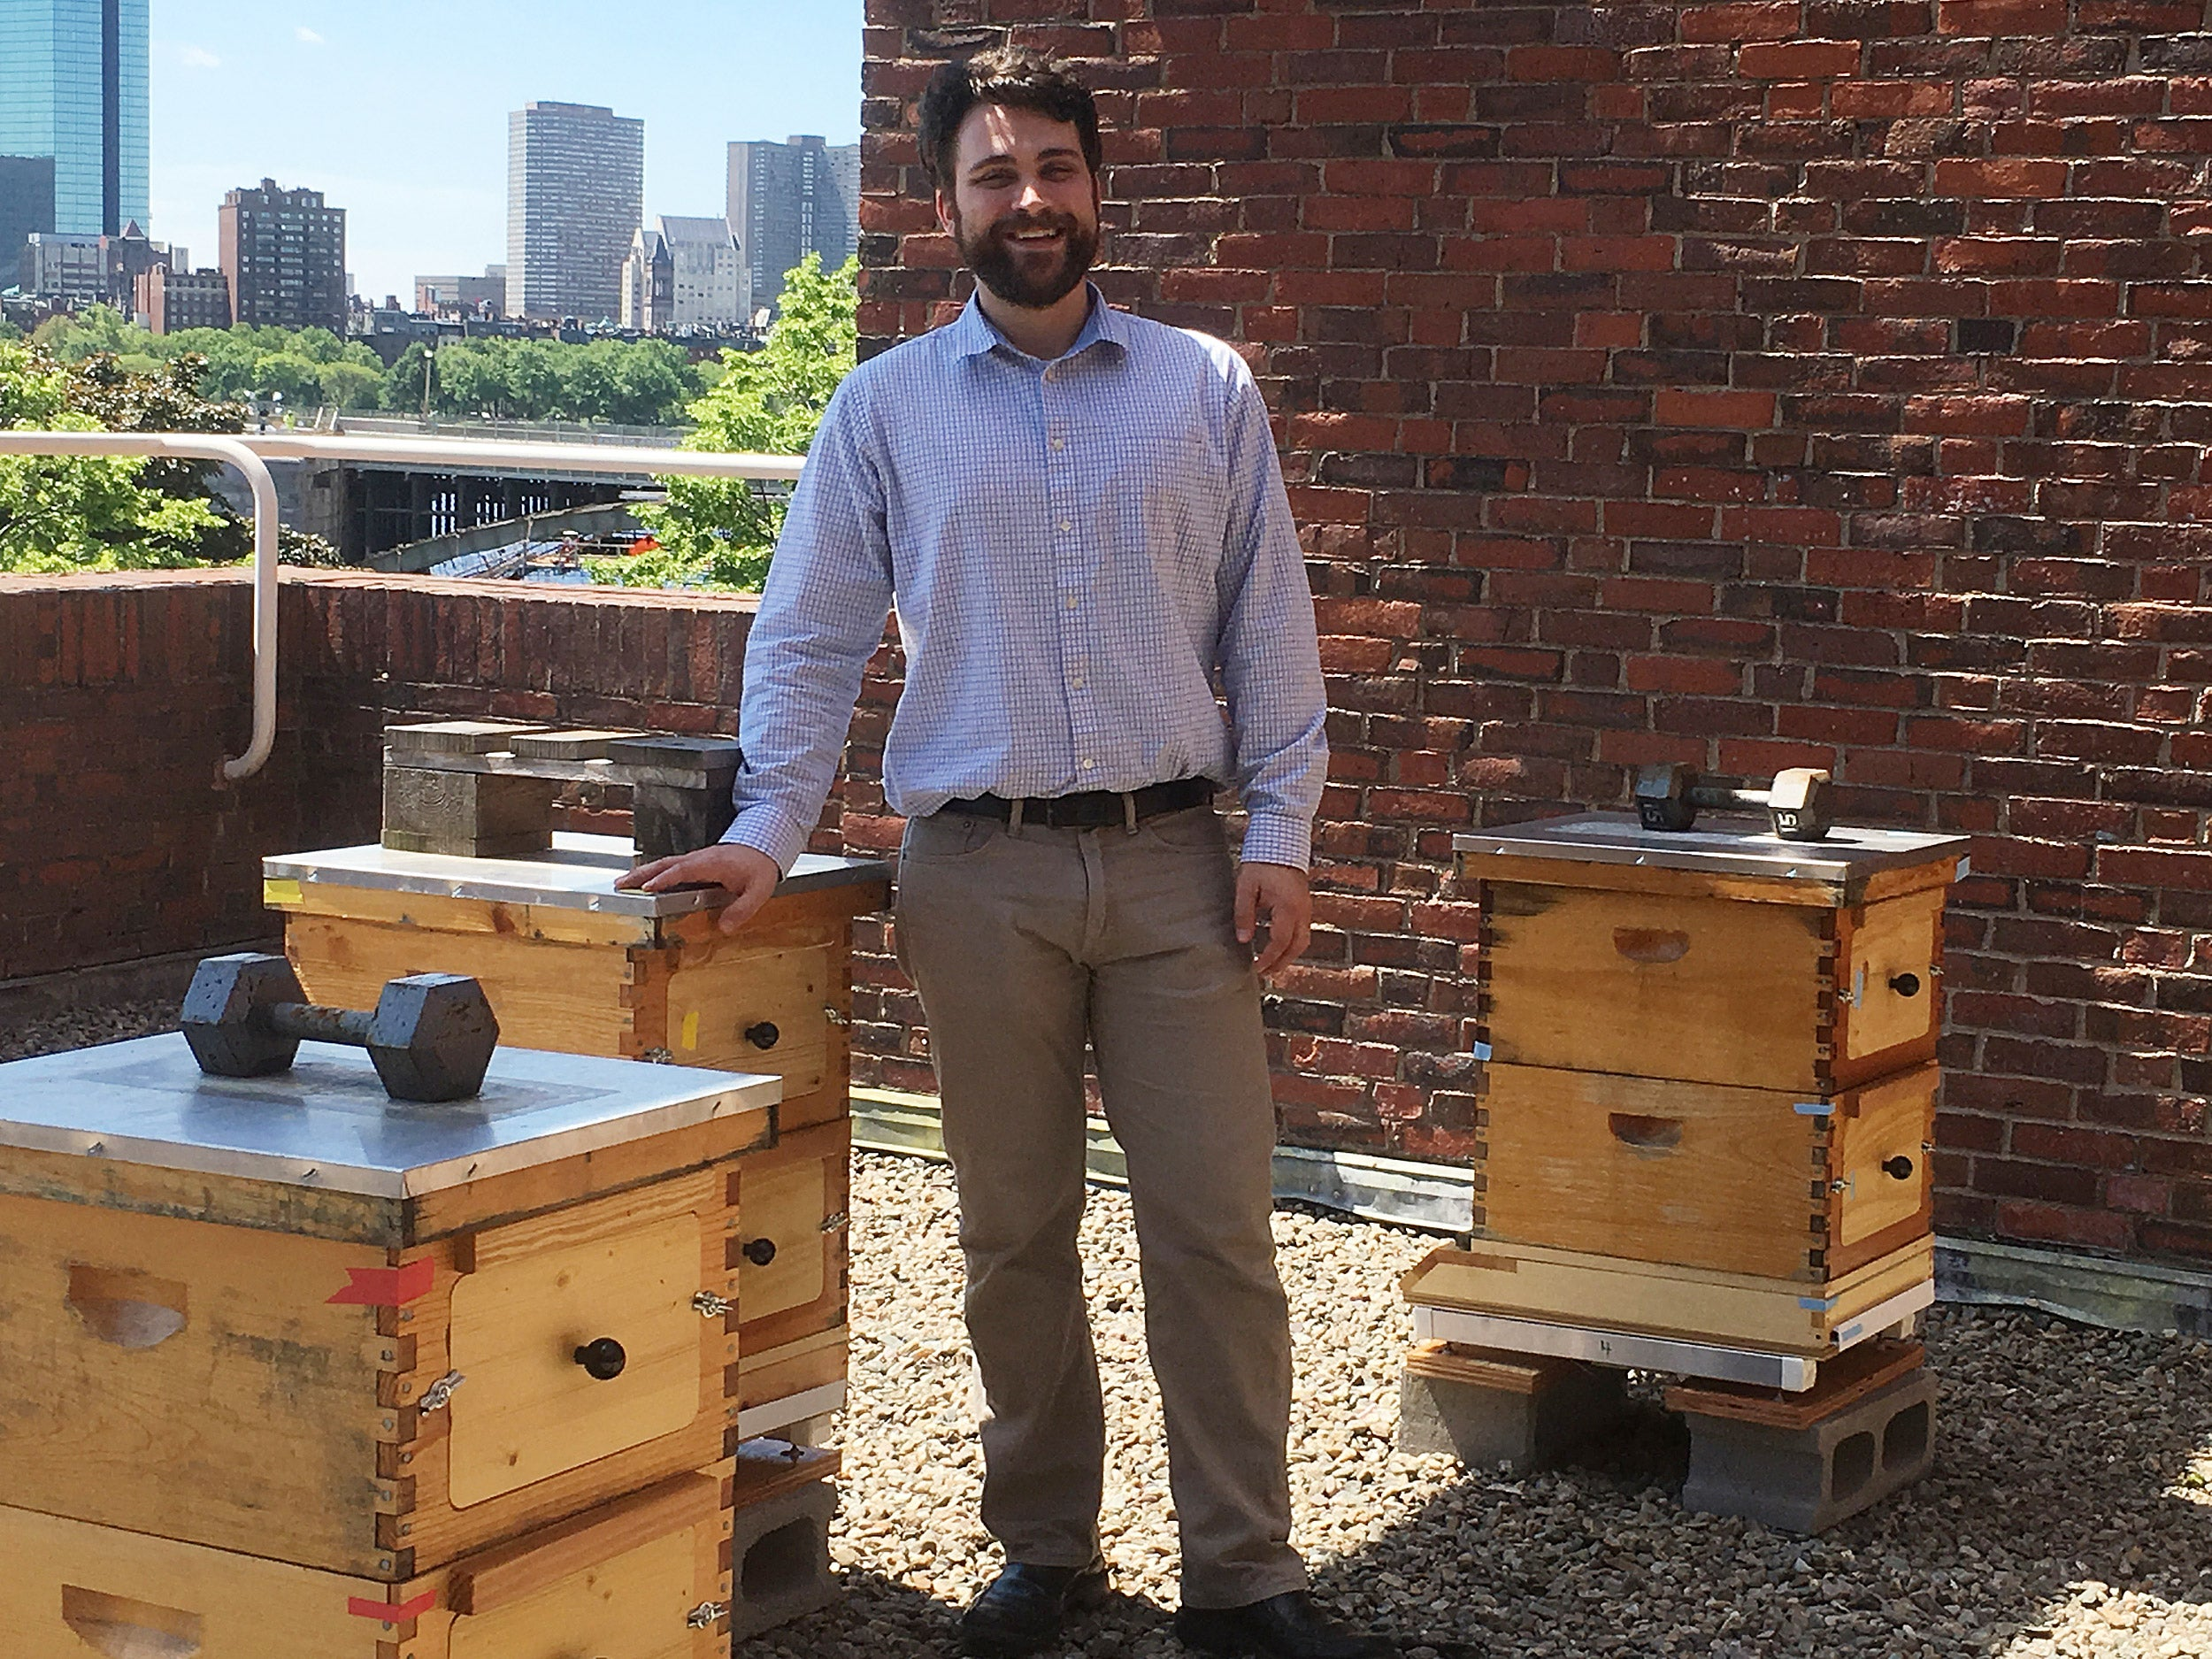 Researcher on roof with beehives.